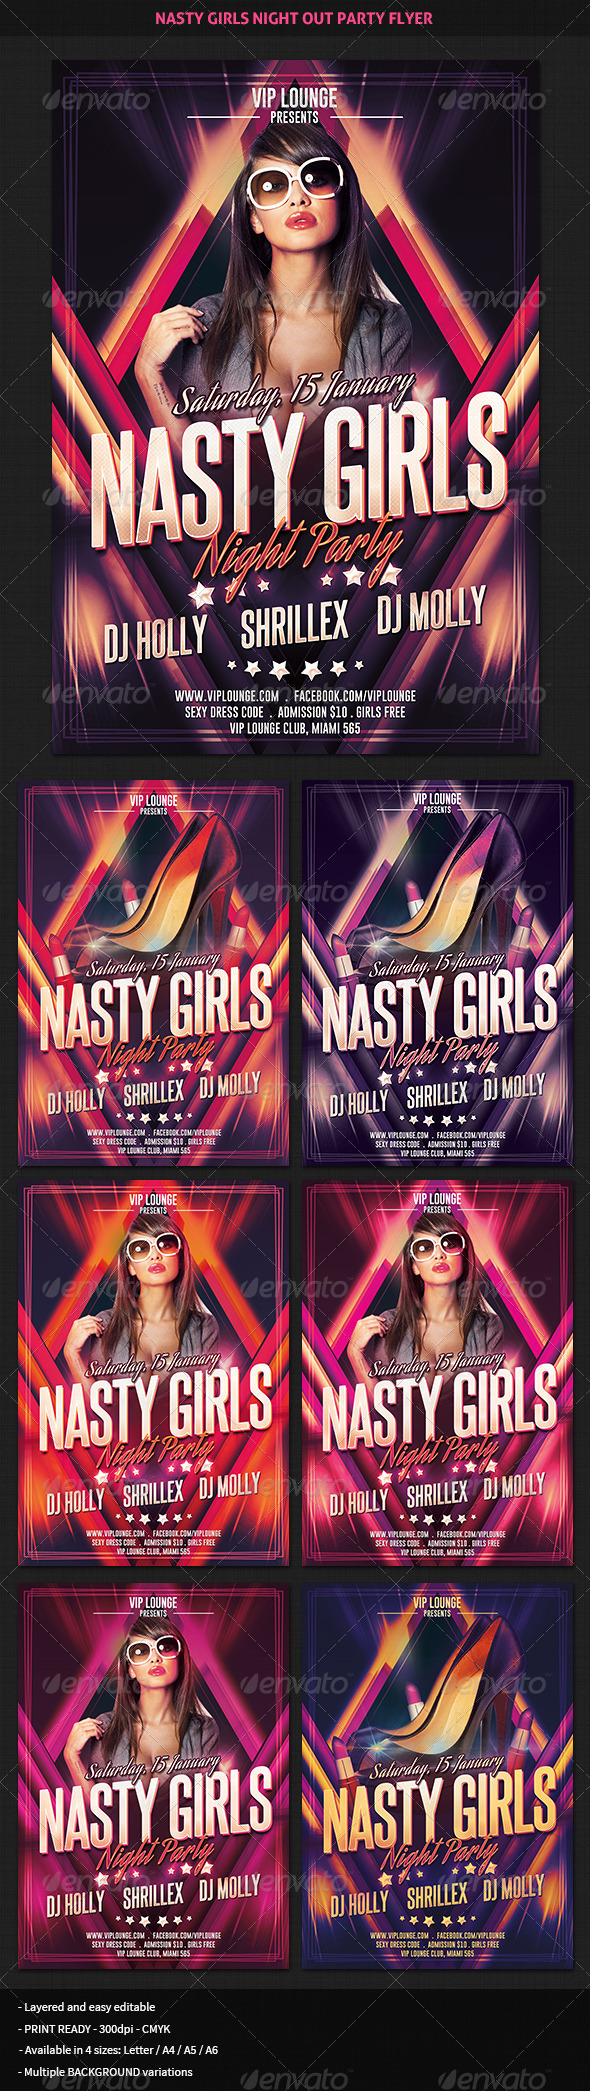 Topic join. nasty girls night out